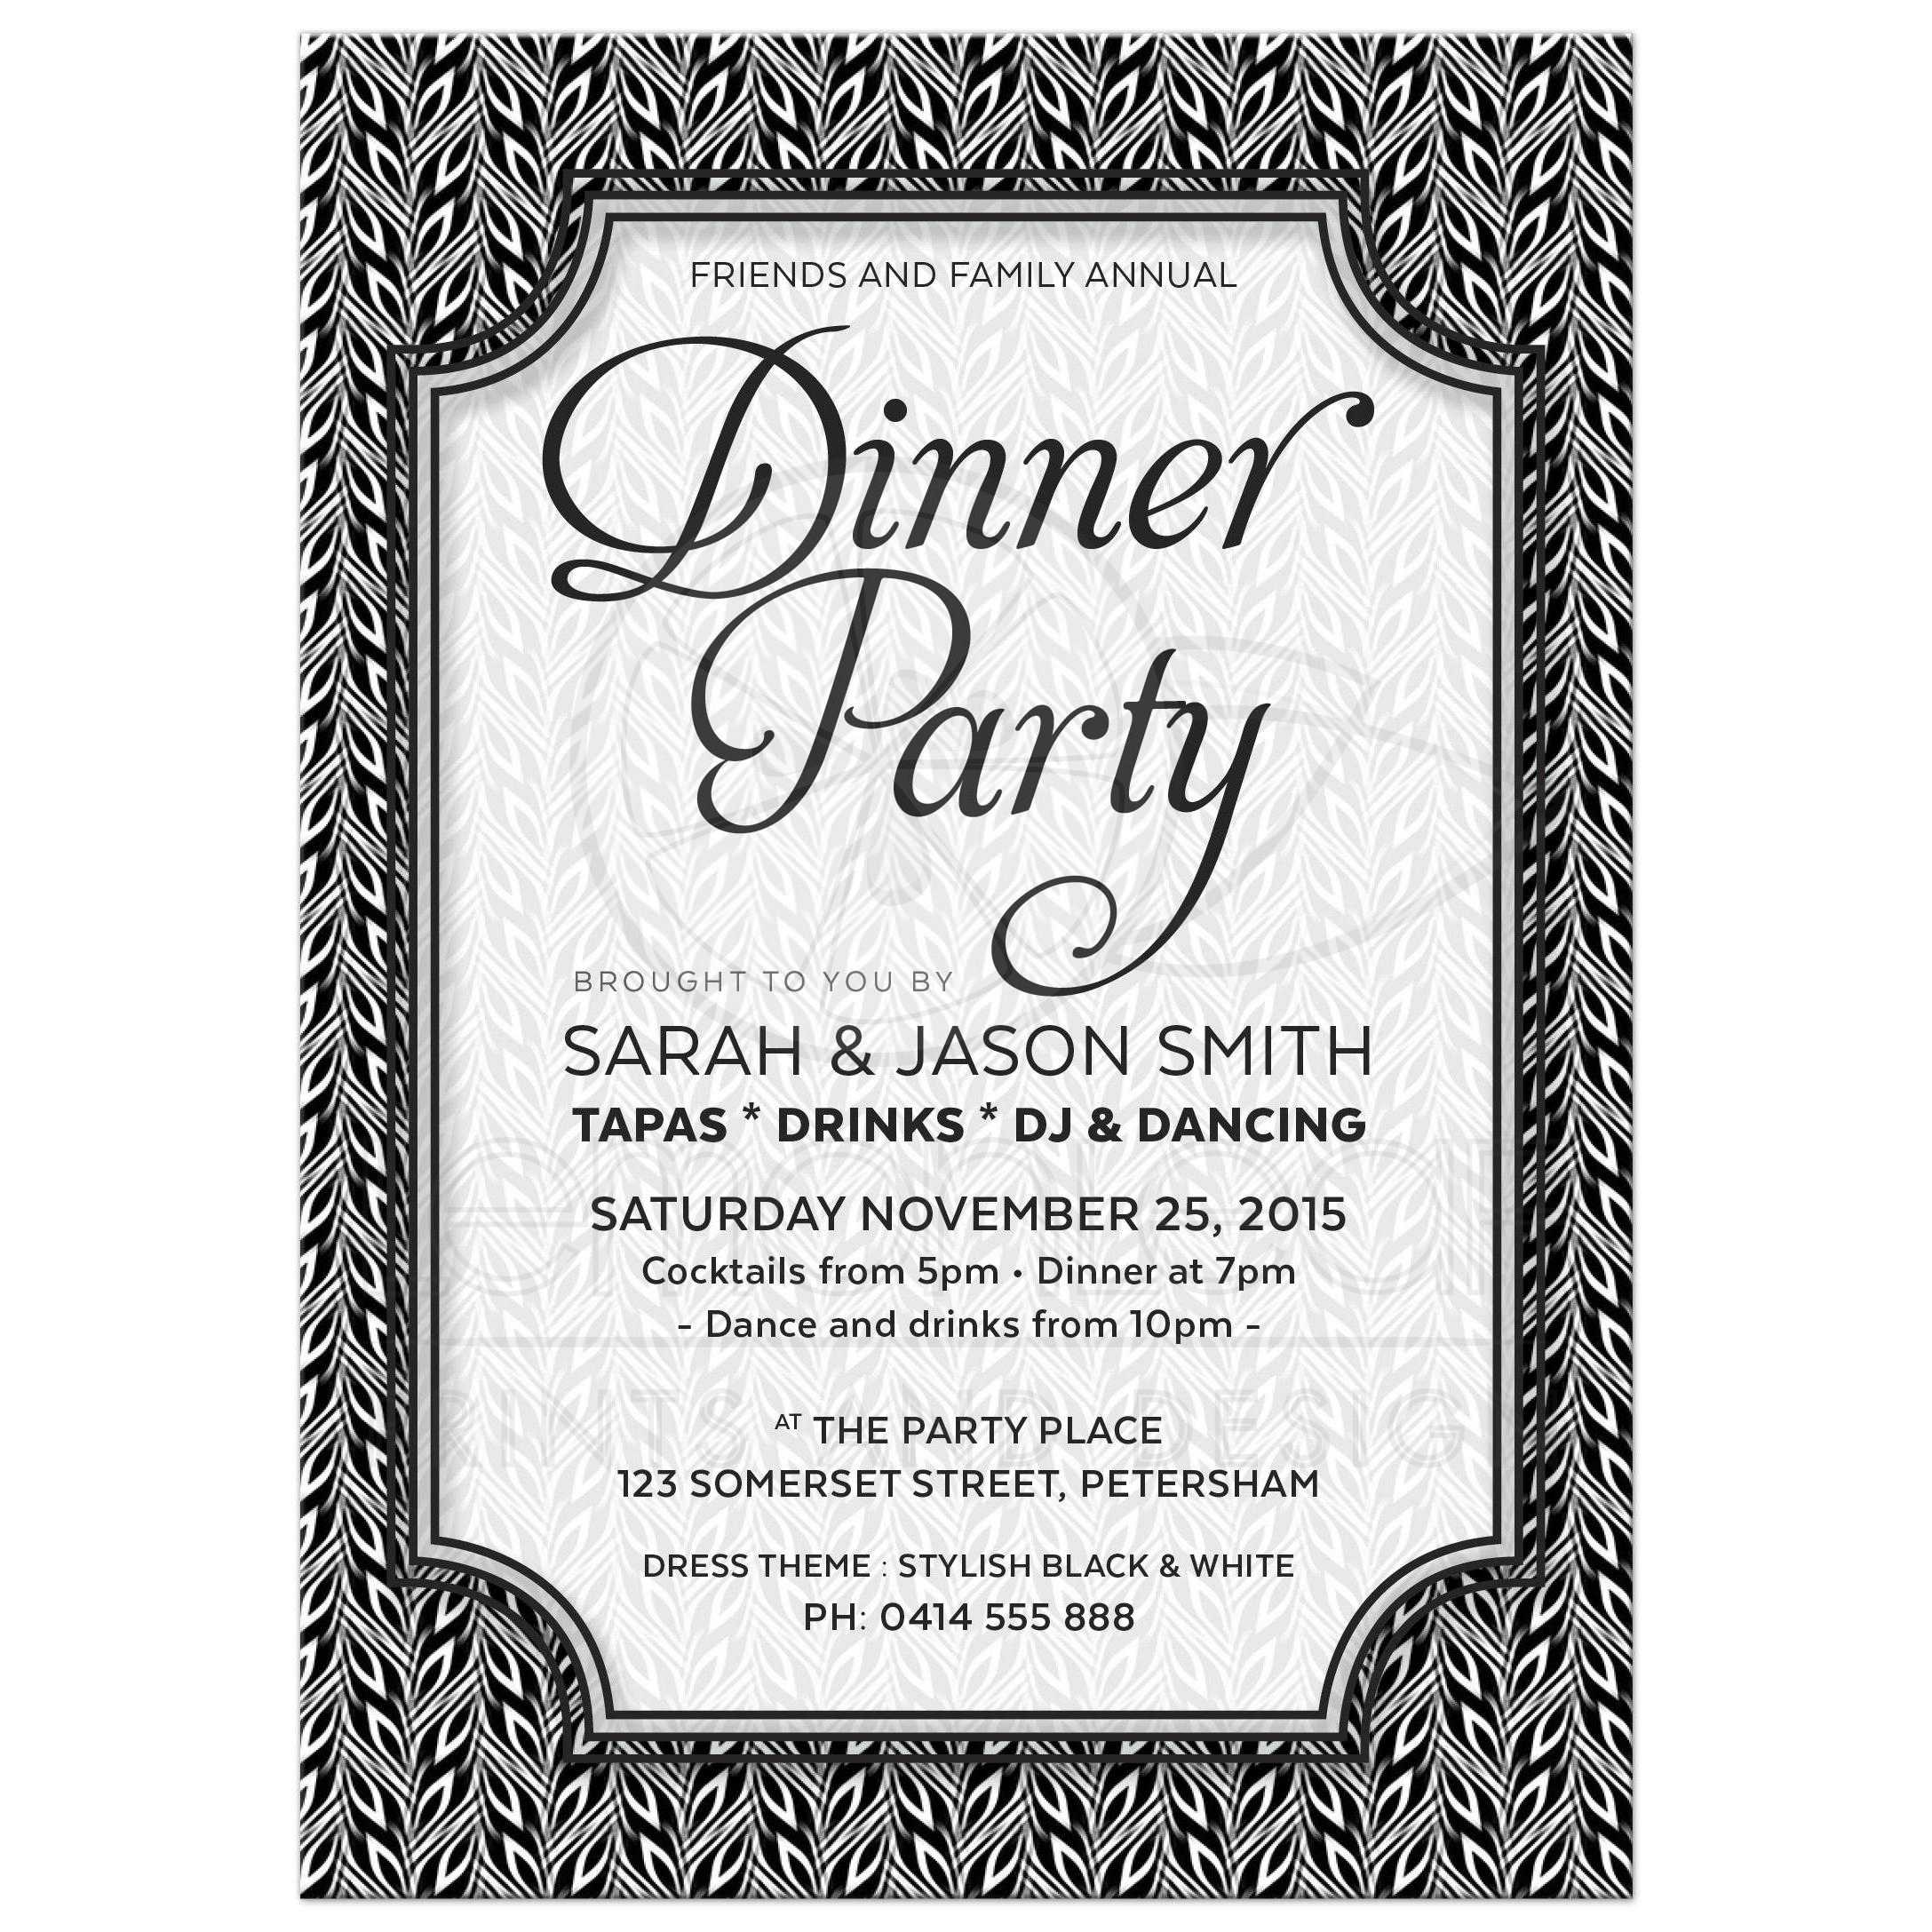 Black and white dinner party invitation simply stylish 02 simply stylish 2 black white dinner party invite stopboris Image collections